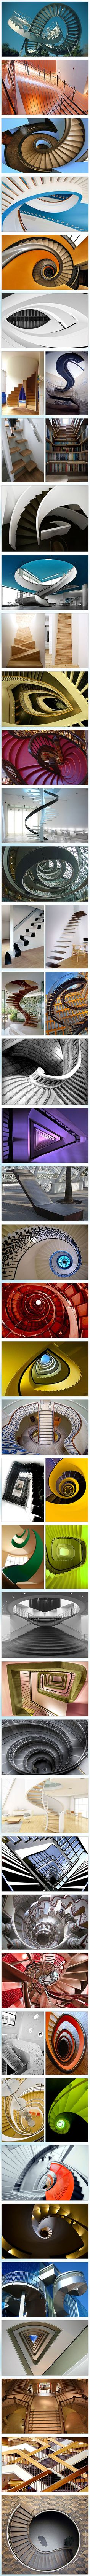 Stair Extraordinaire—50 Creative and Beautiful Stair Images   Coffeeoath.com,  hey Take the stairs then>@ LOL